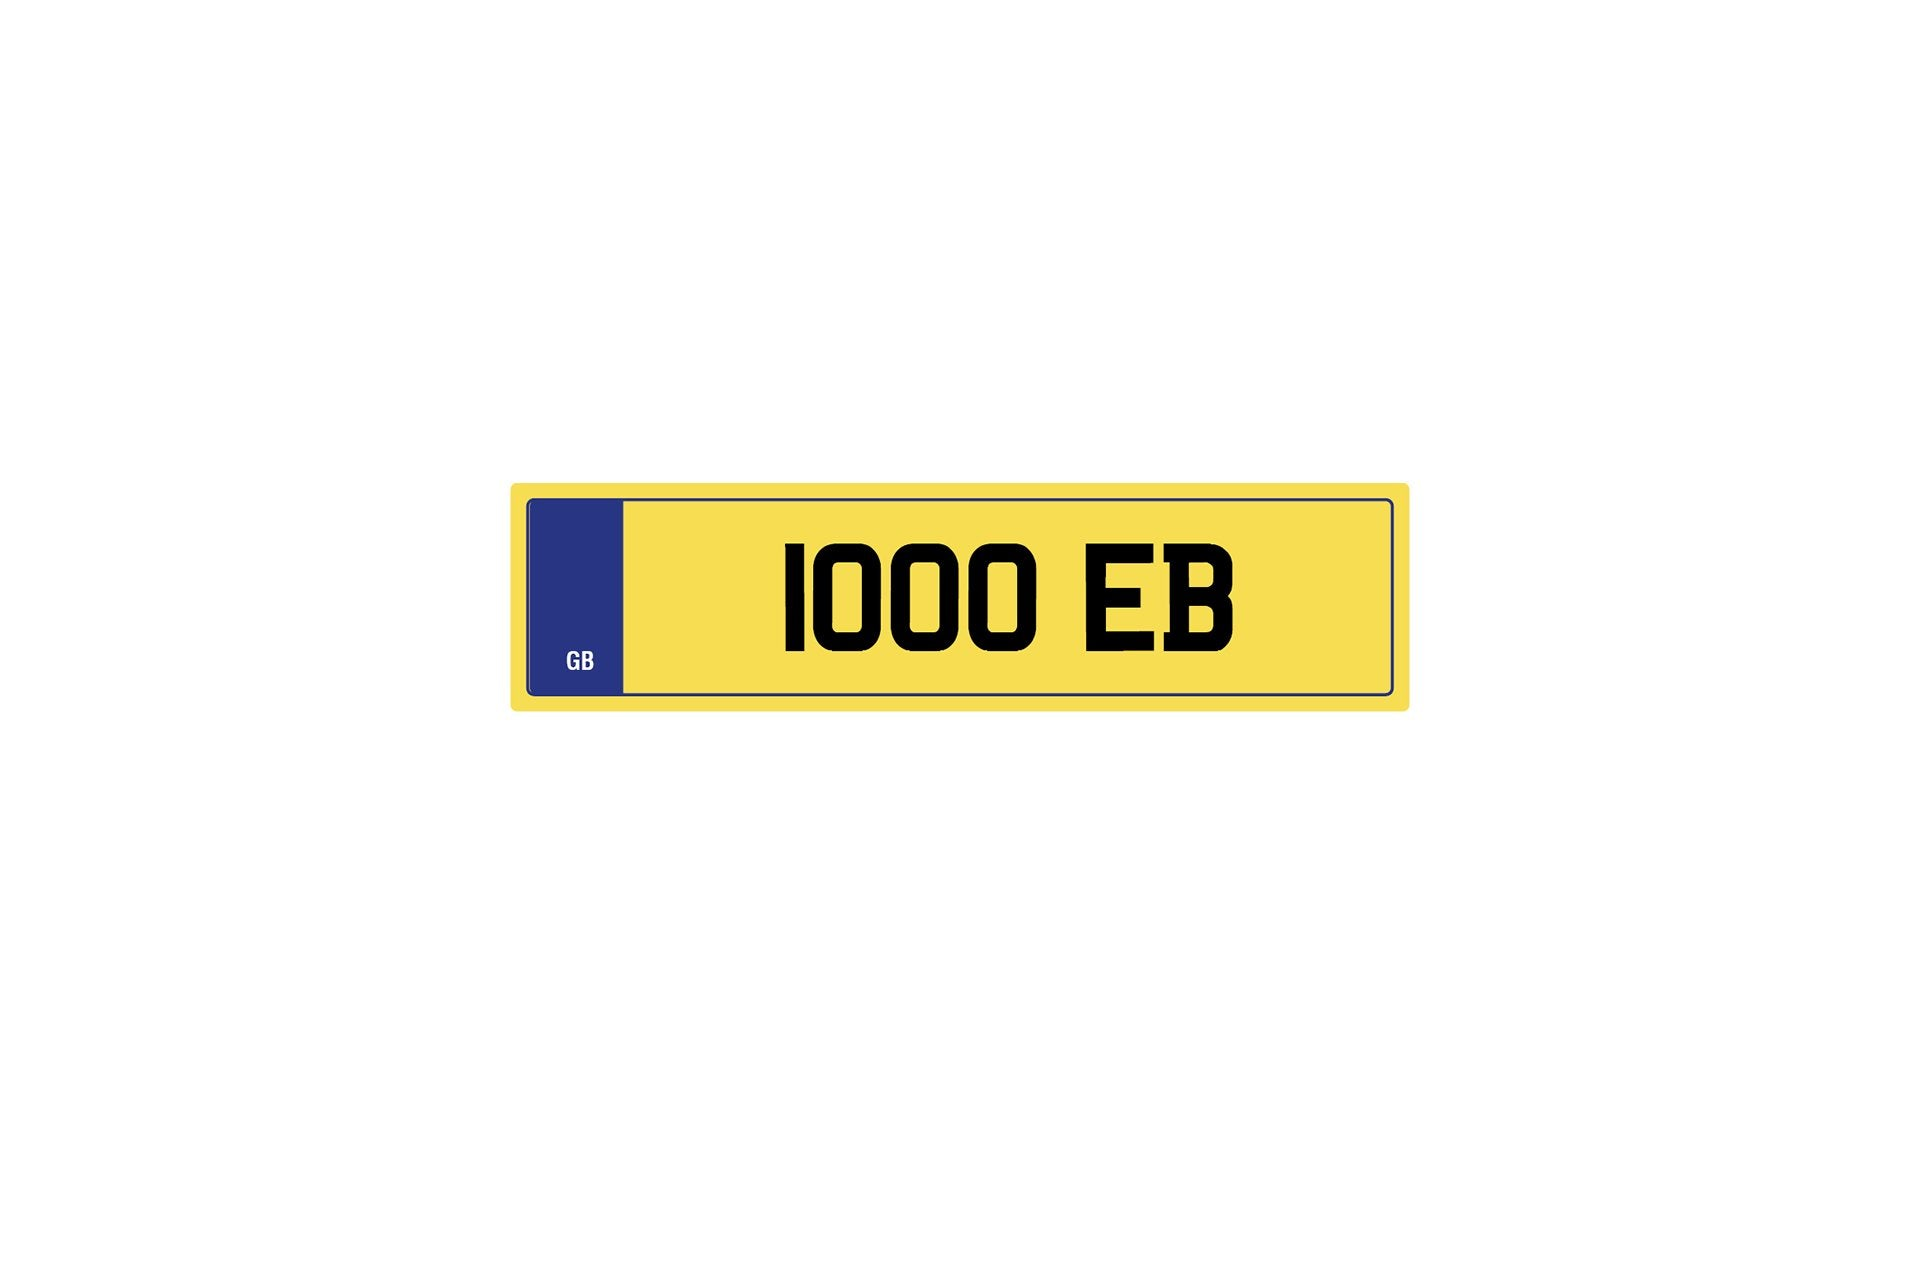 Private Plate 1000 Eb by Kahn - Image 261